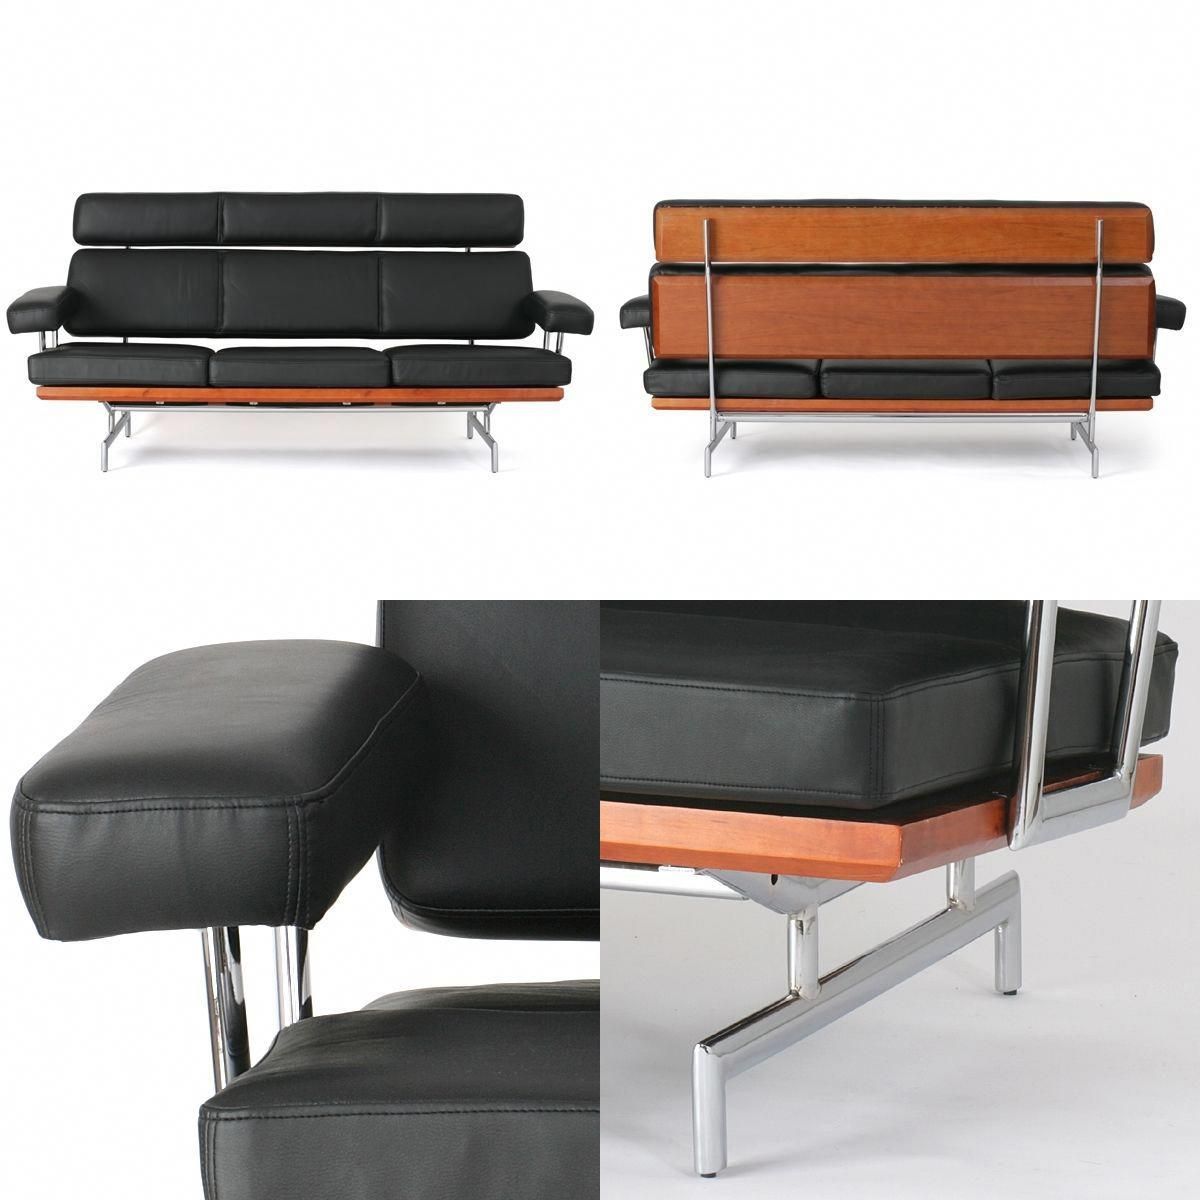 Superb Fake Eames 3 Seat Black Leather Sofa Ebay A Few Black Squirreltailoven Fun Painted Chair Ideas Images Squirreltailovenorg